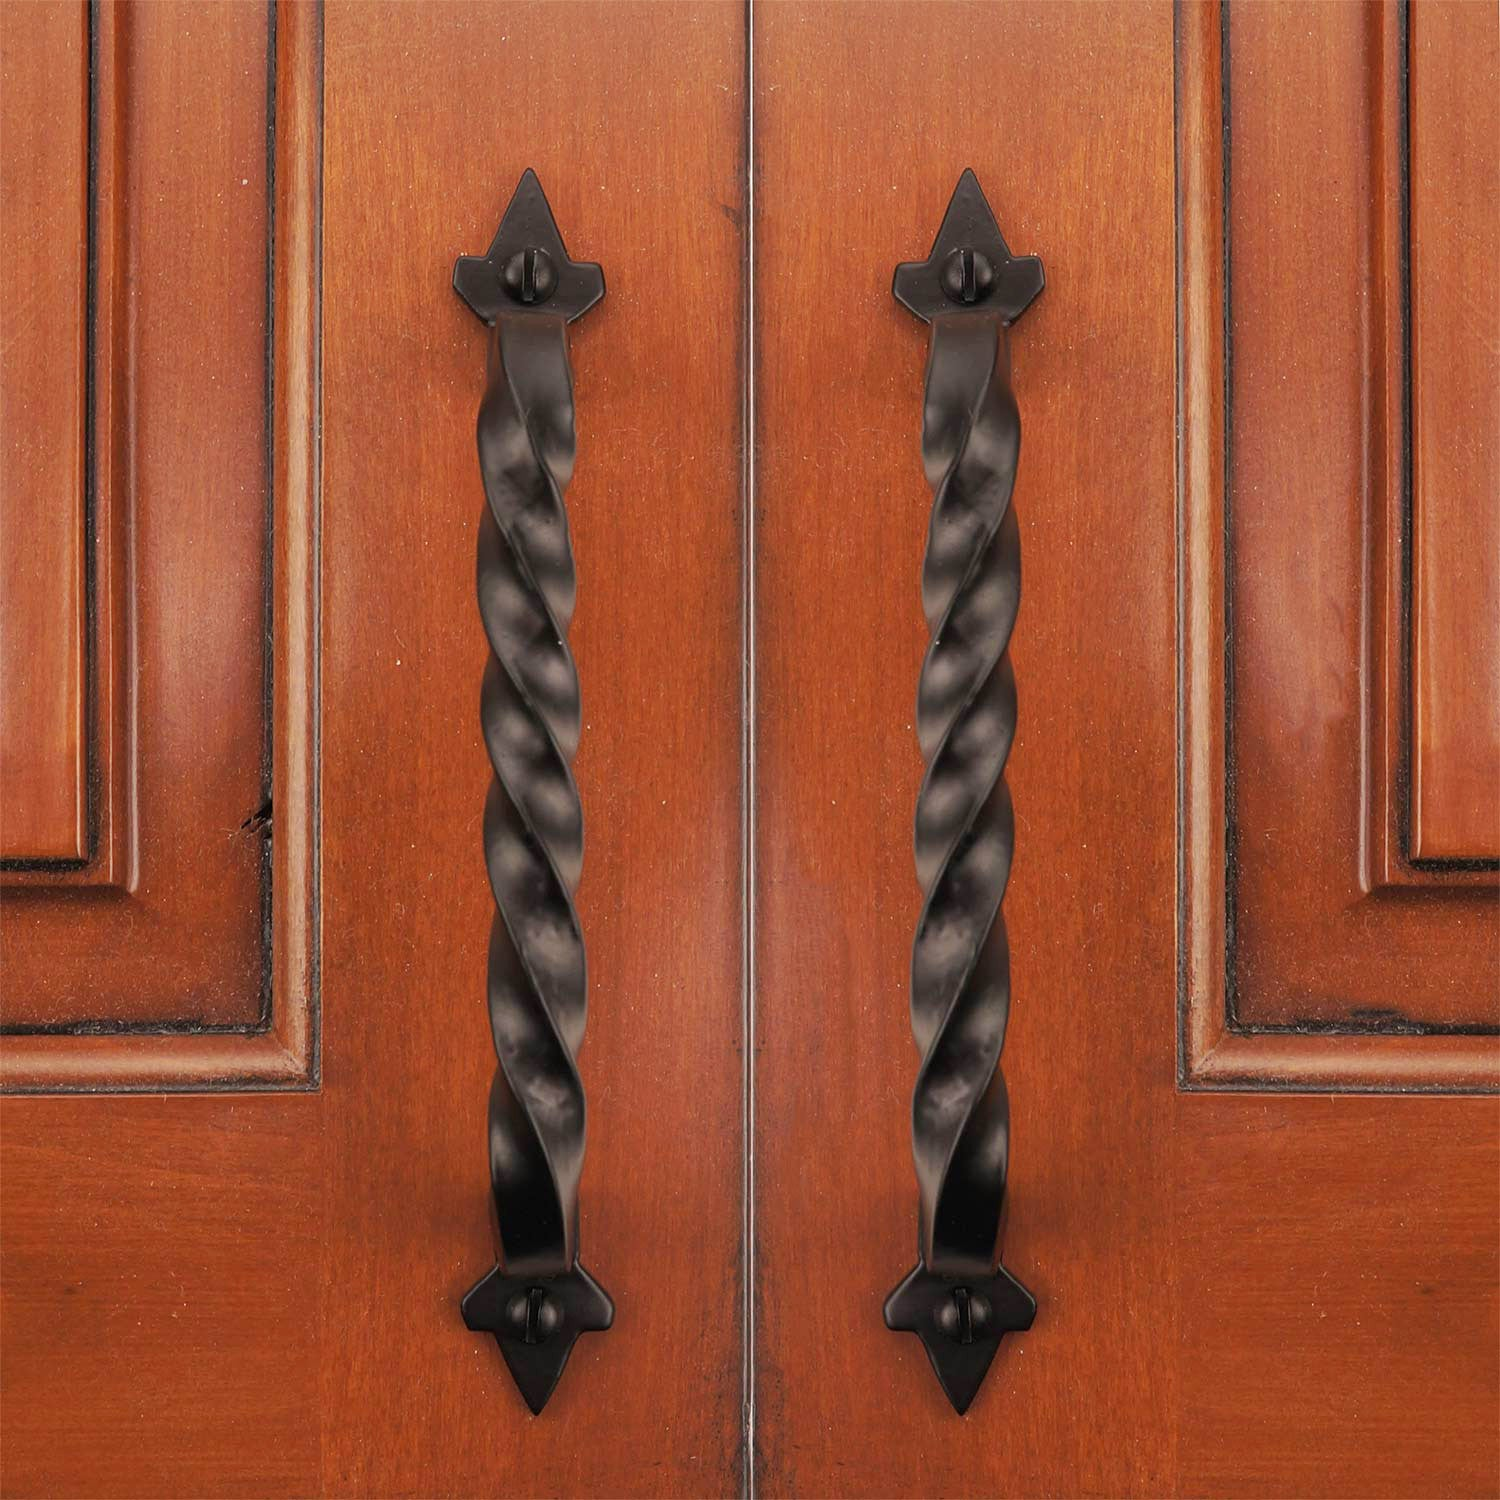 6 Ripple Cabinet Pull Handles Solid Cast Iron Pack of 5